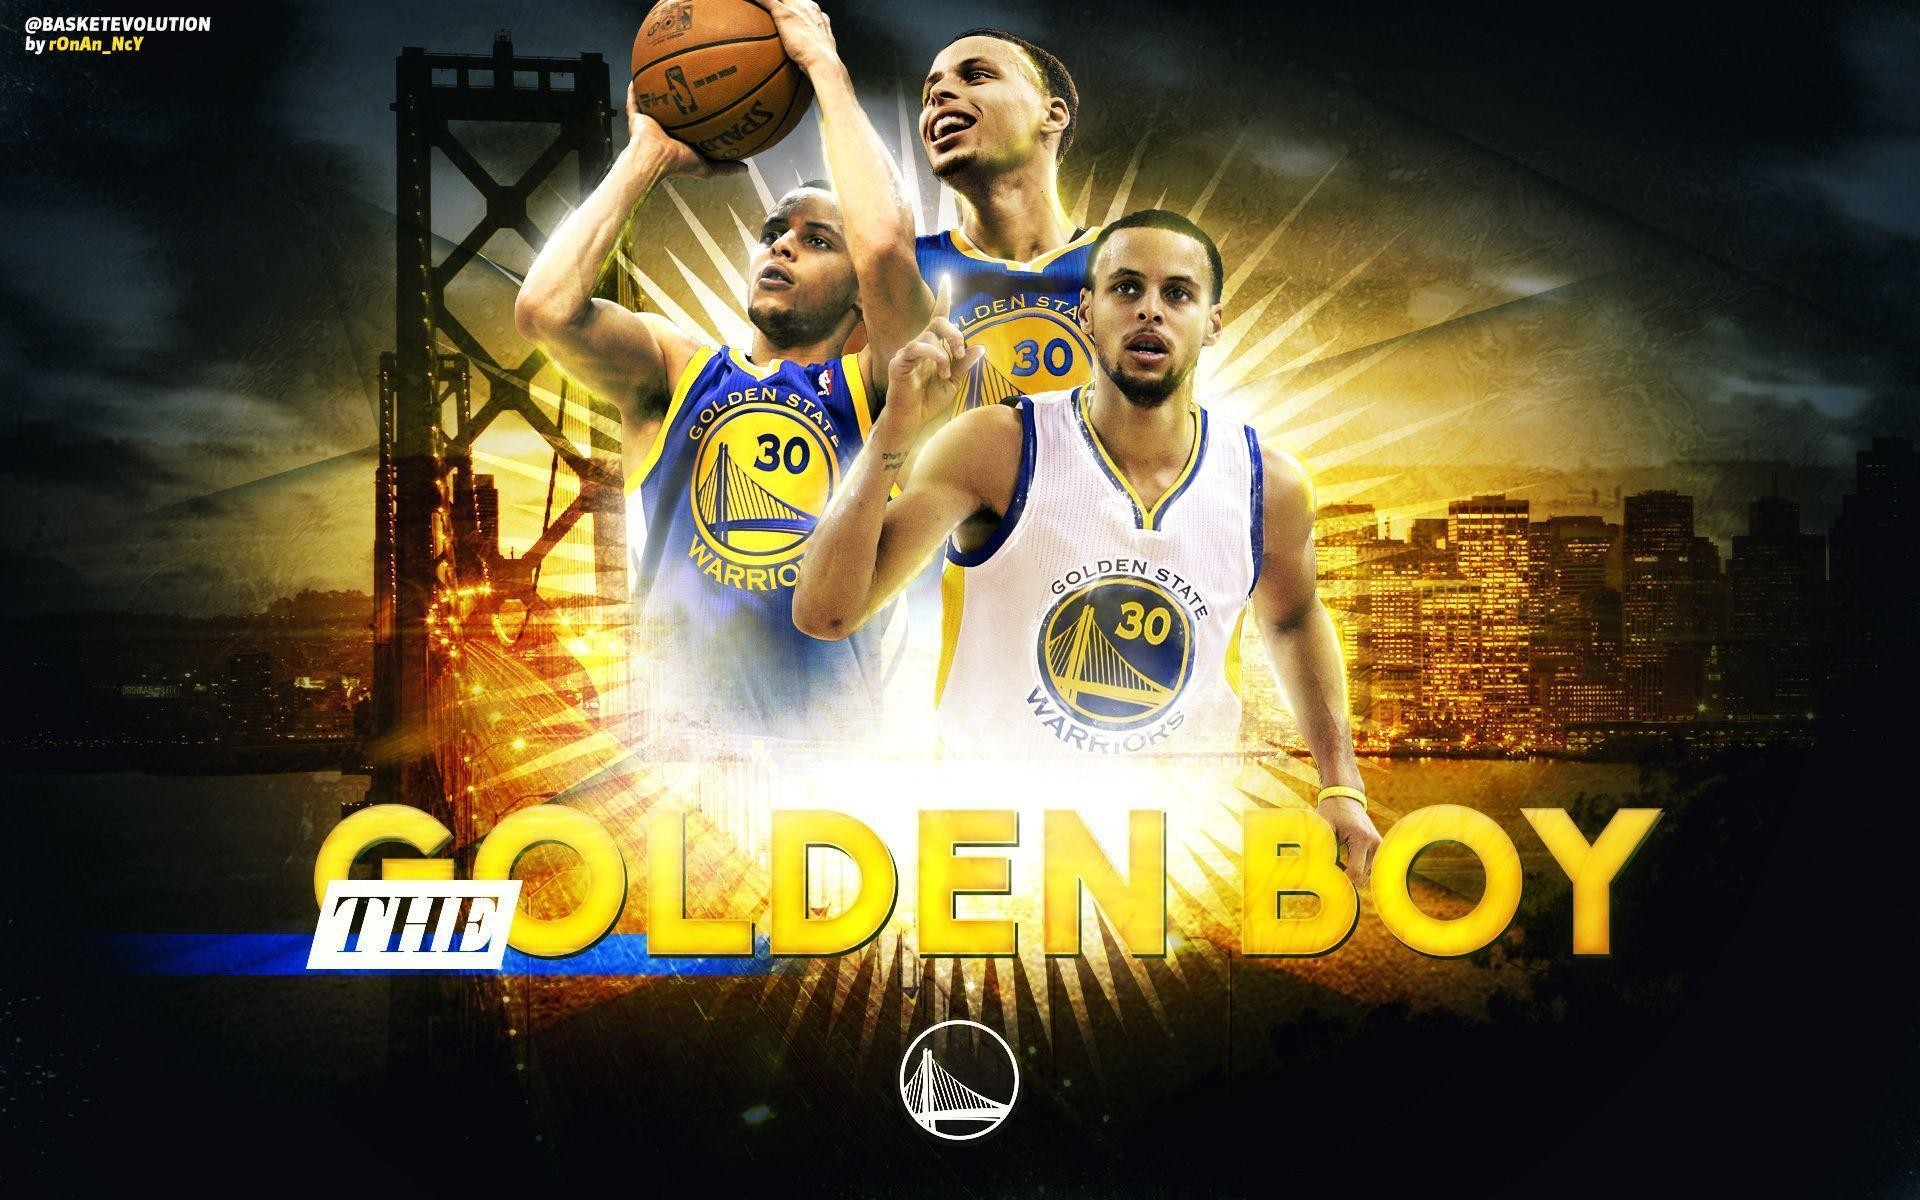 1920x1200 Stephen Curry Wallpaper HD free download | PixelsTalk.Net